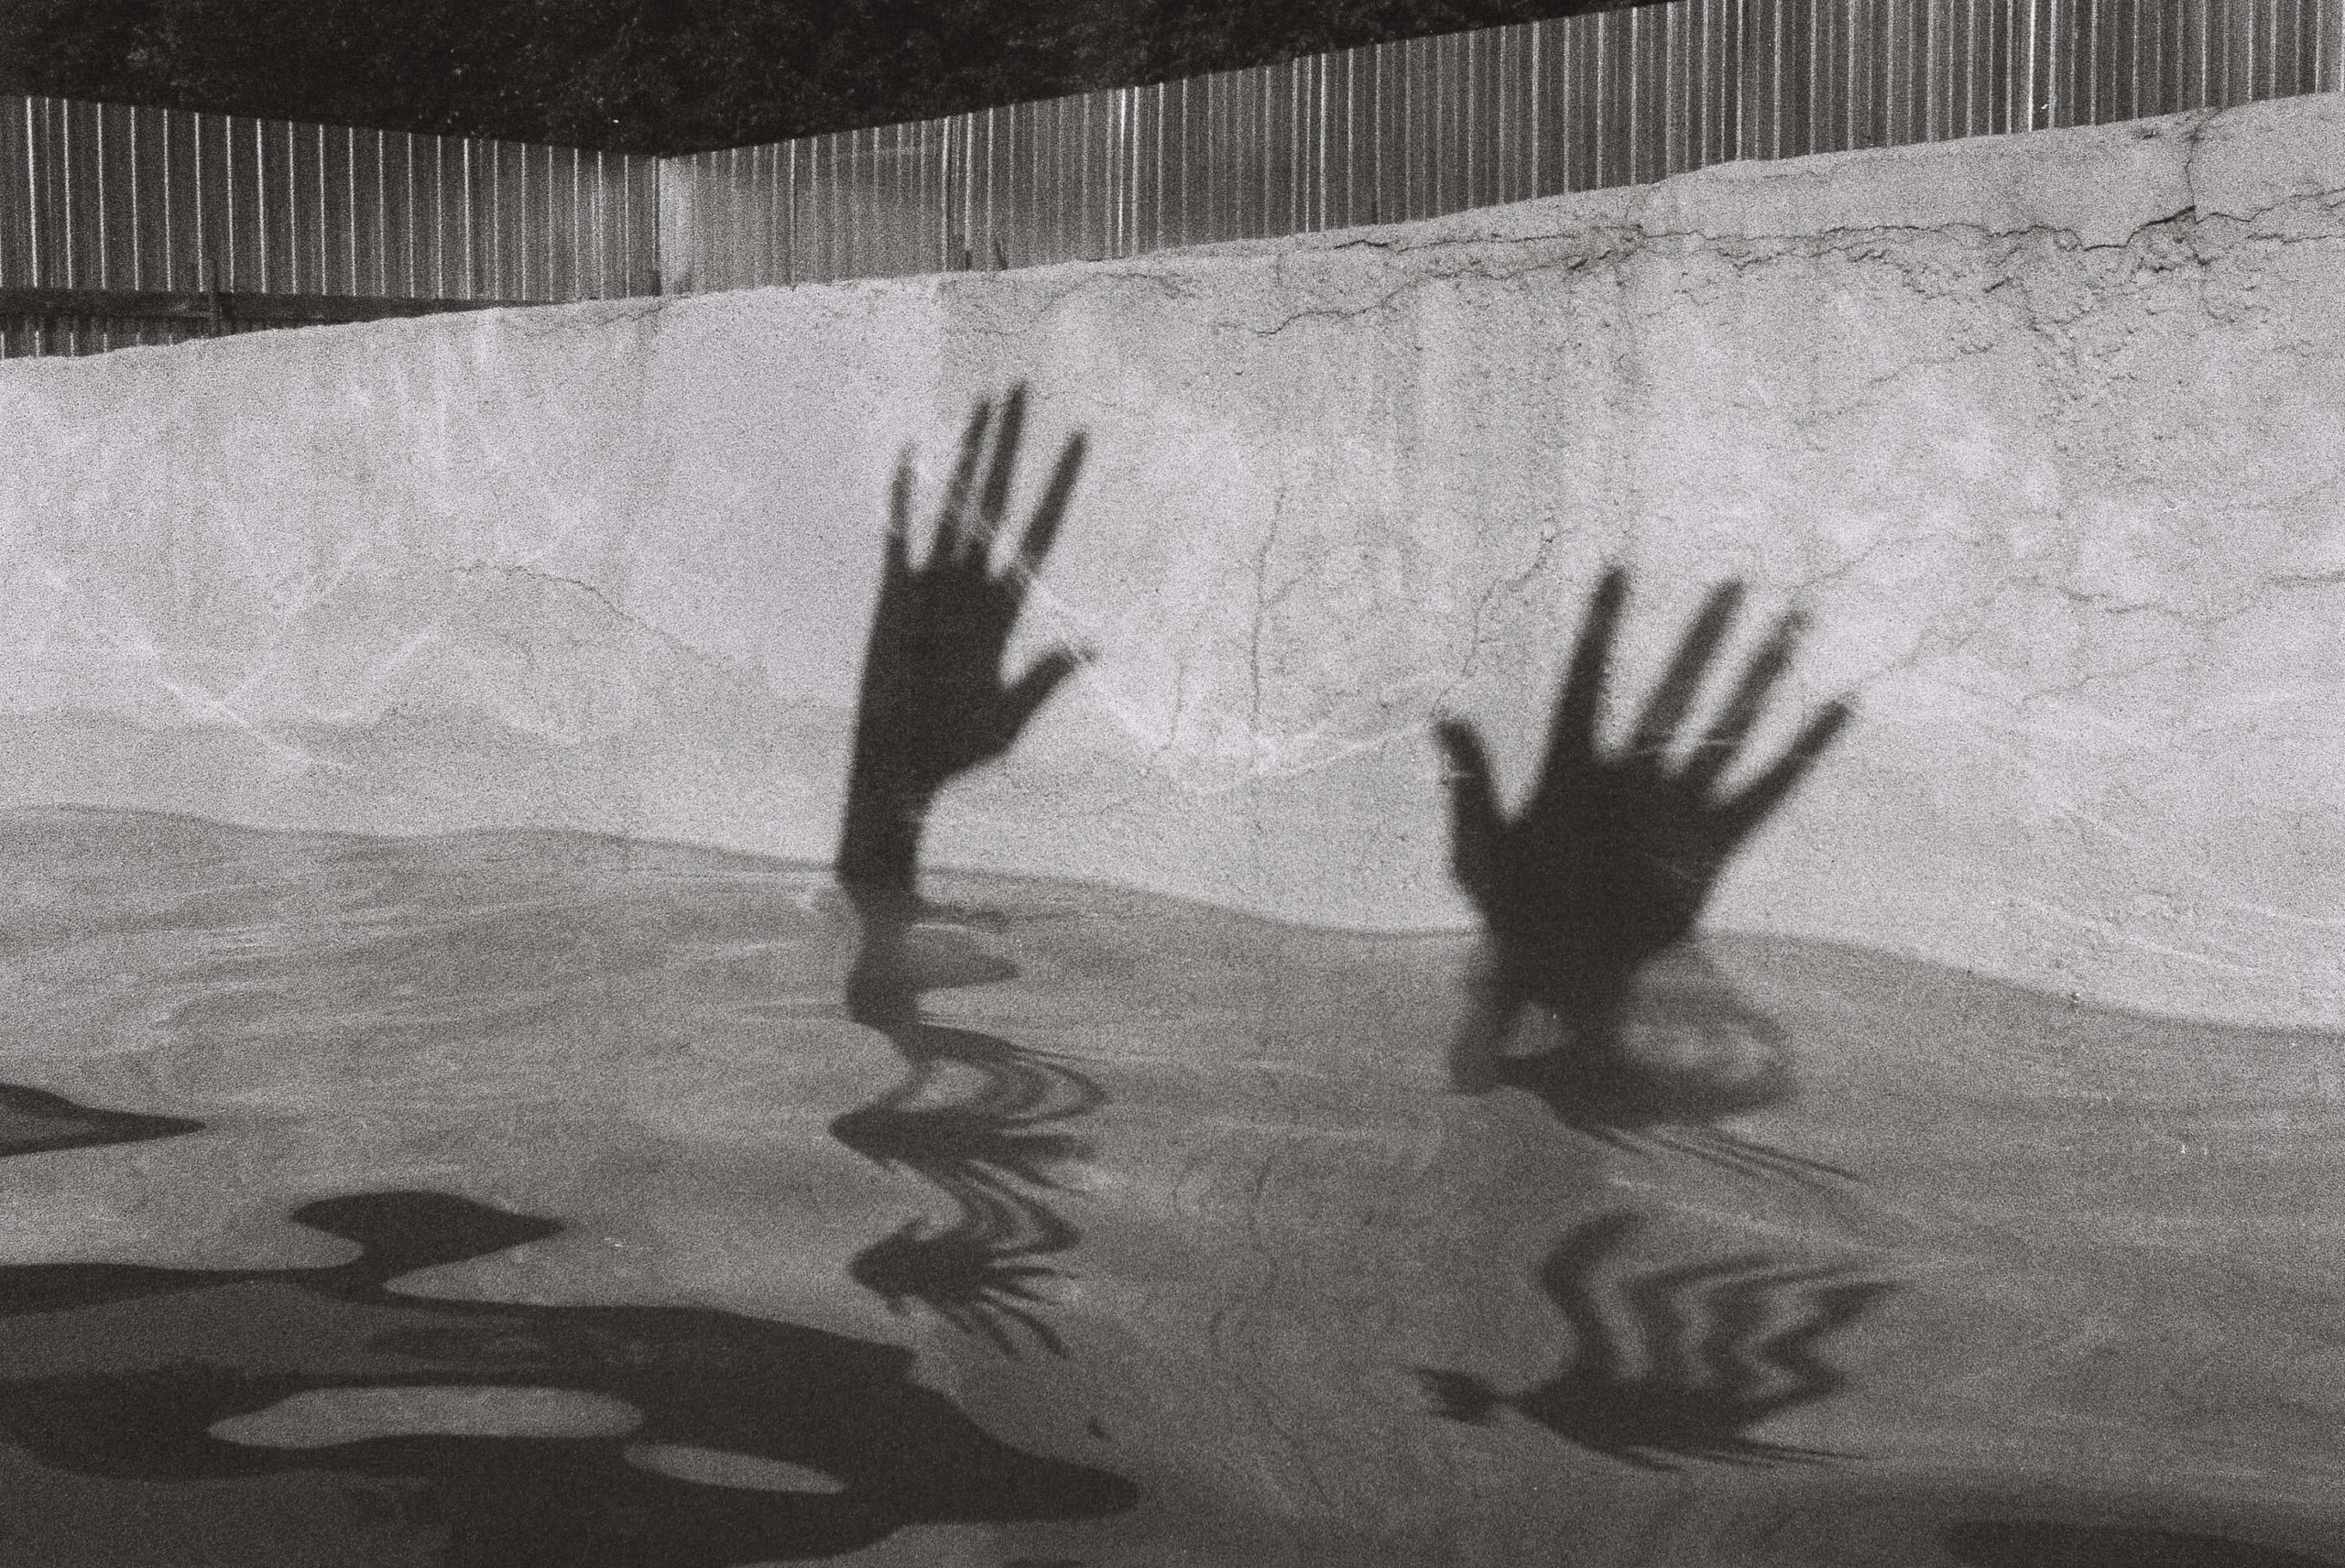 Silhouette of hands on top of water